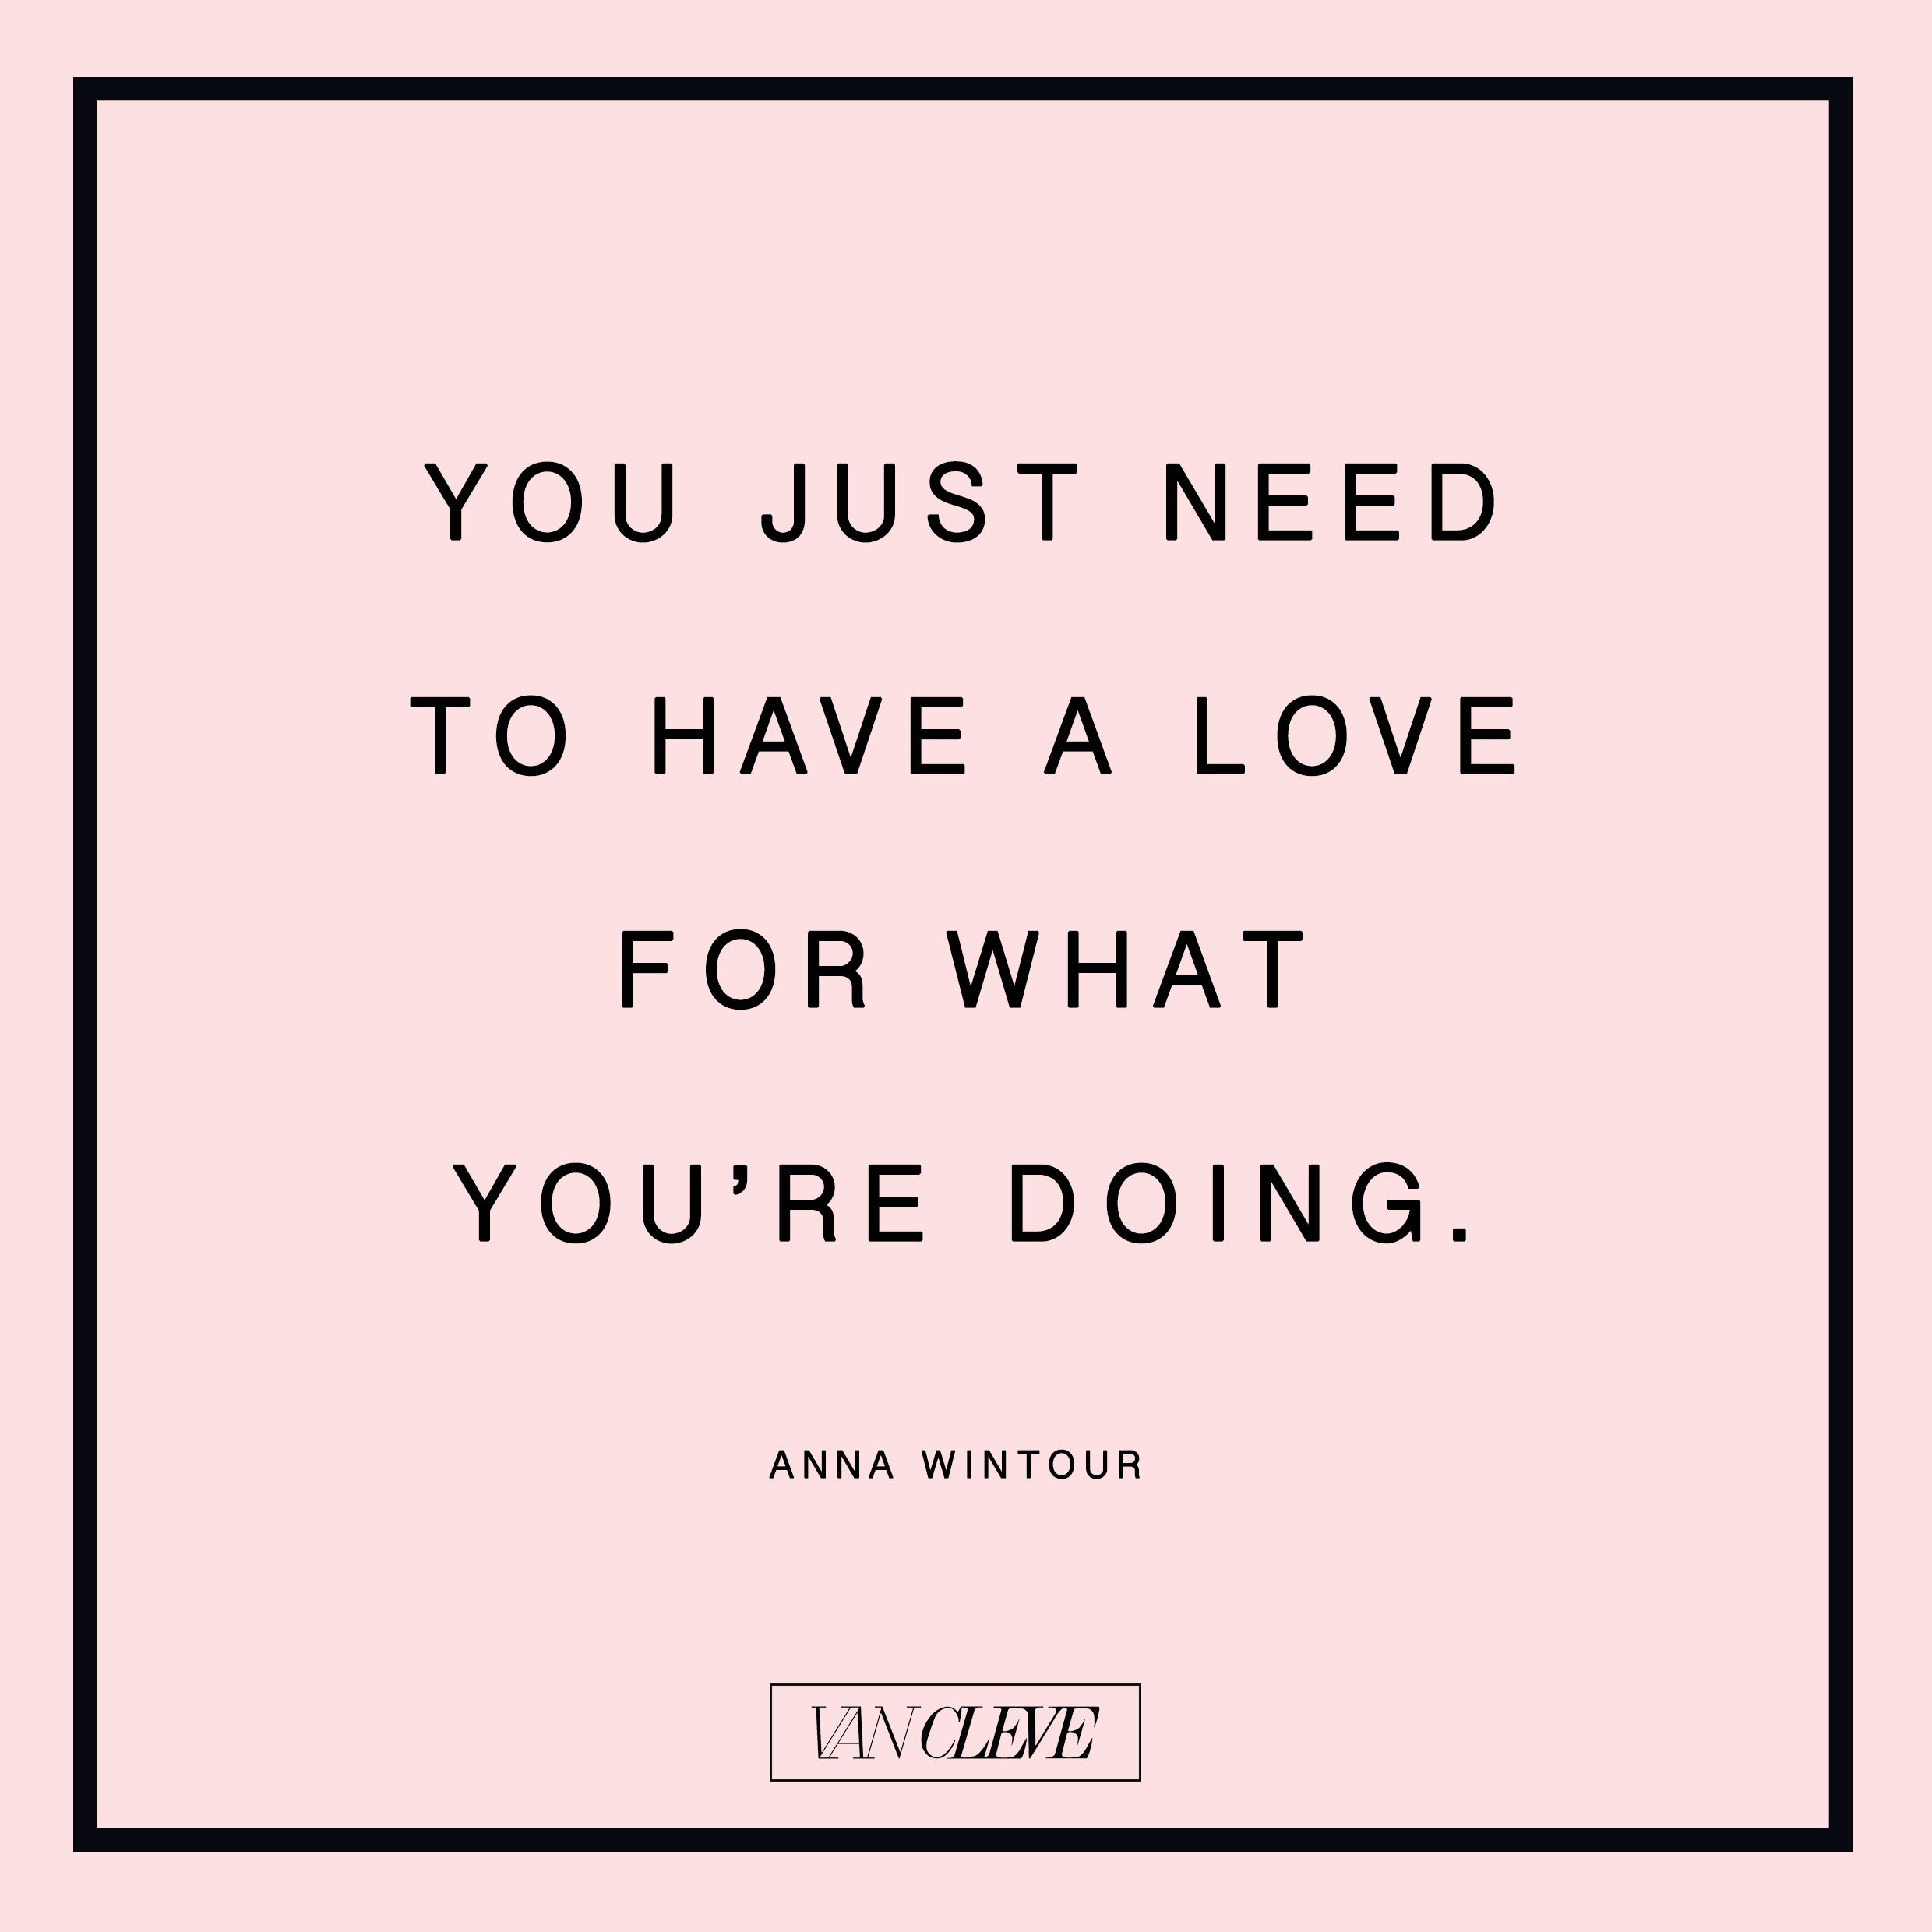 """You just need to have a love for what you're doing."" Anna Wintour #vanclevequote"